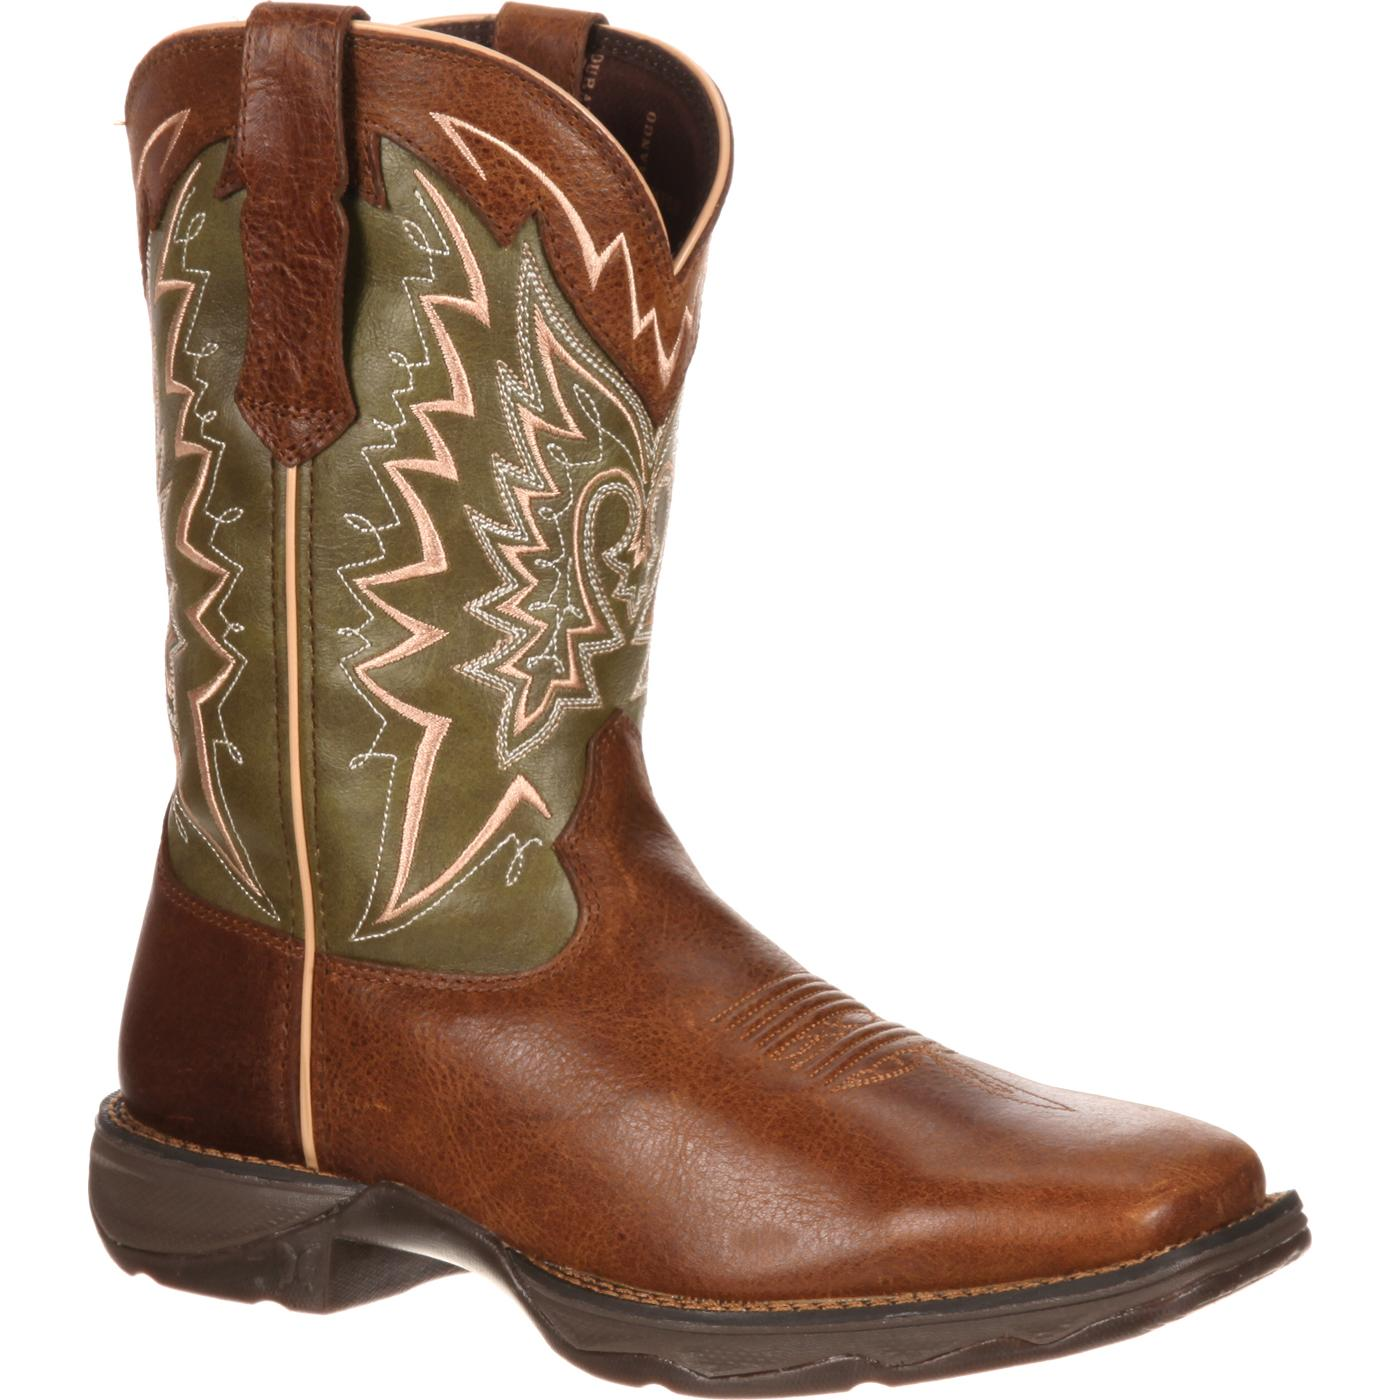 New Sale Women Durango Boot DRD0053 10 Brown/Green Leather